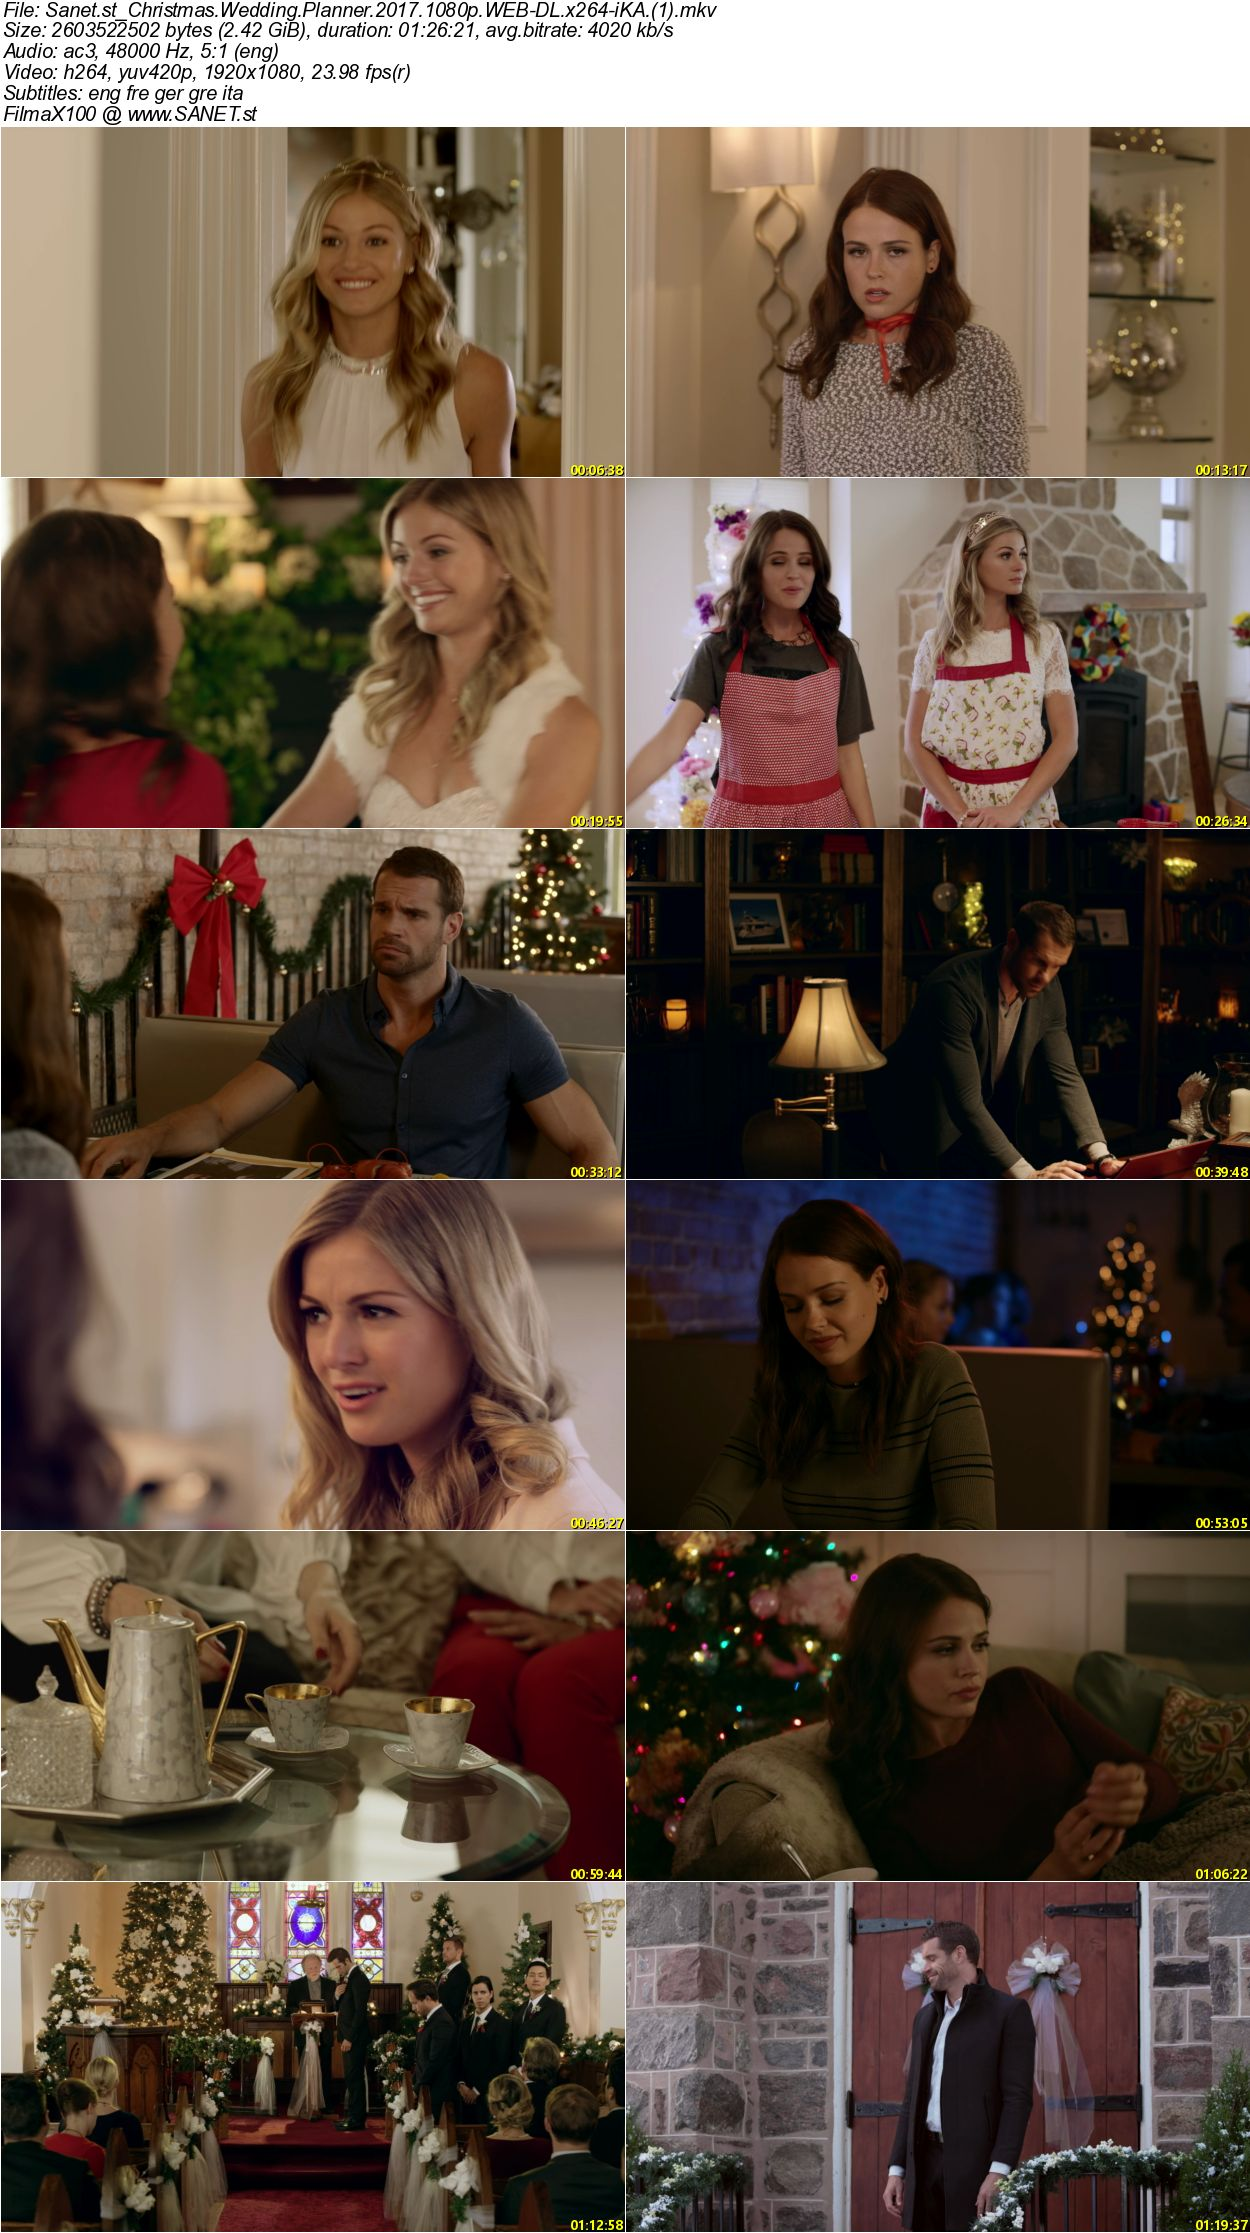 Christmas Wedding Planner.Download Christmas Wedding Planner 2017 1080p Web Dl X264